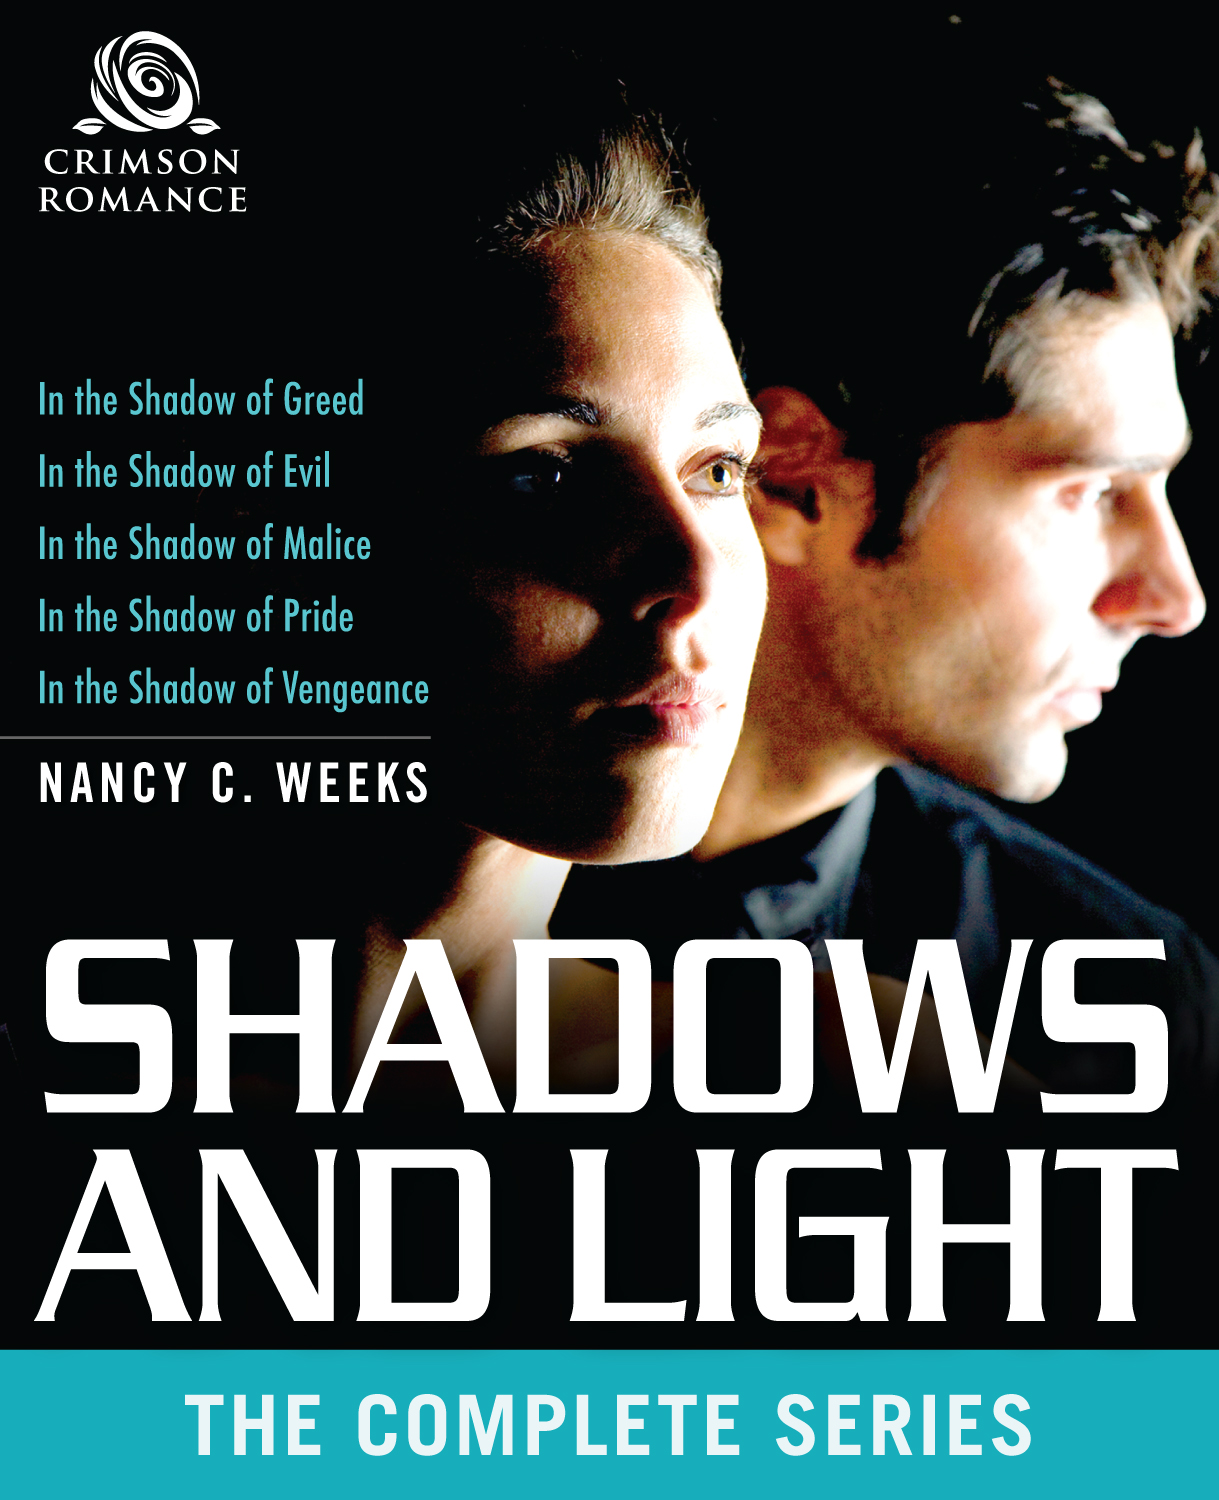 SHADOWS AND LIGHT: THE COMPLETE SERIES ONLY 99 CENTS